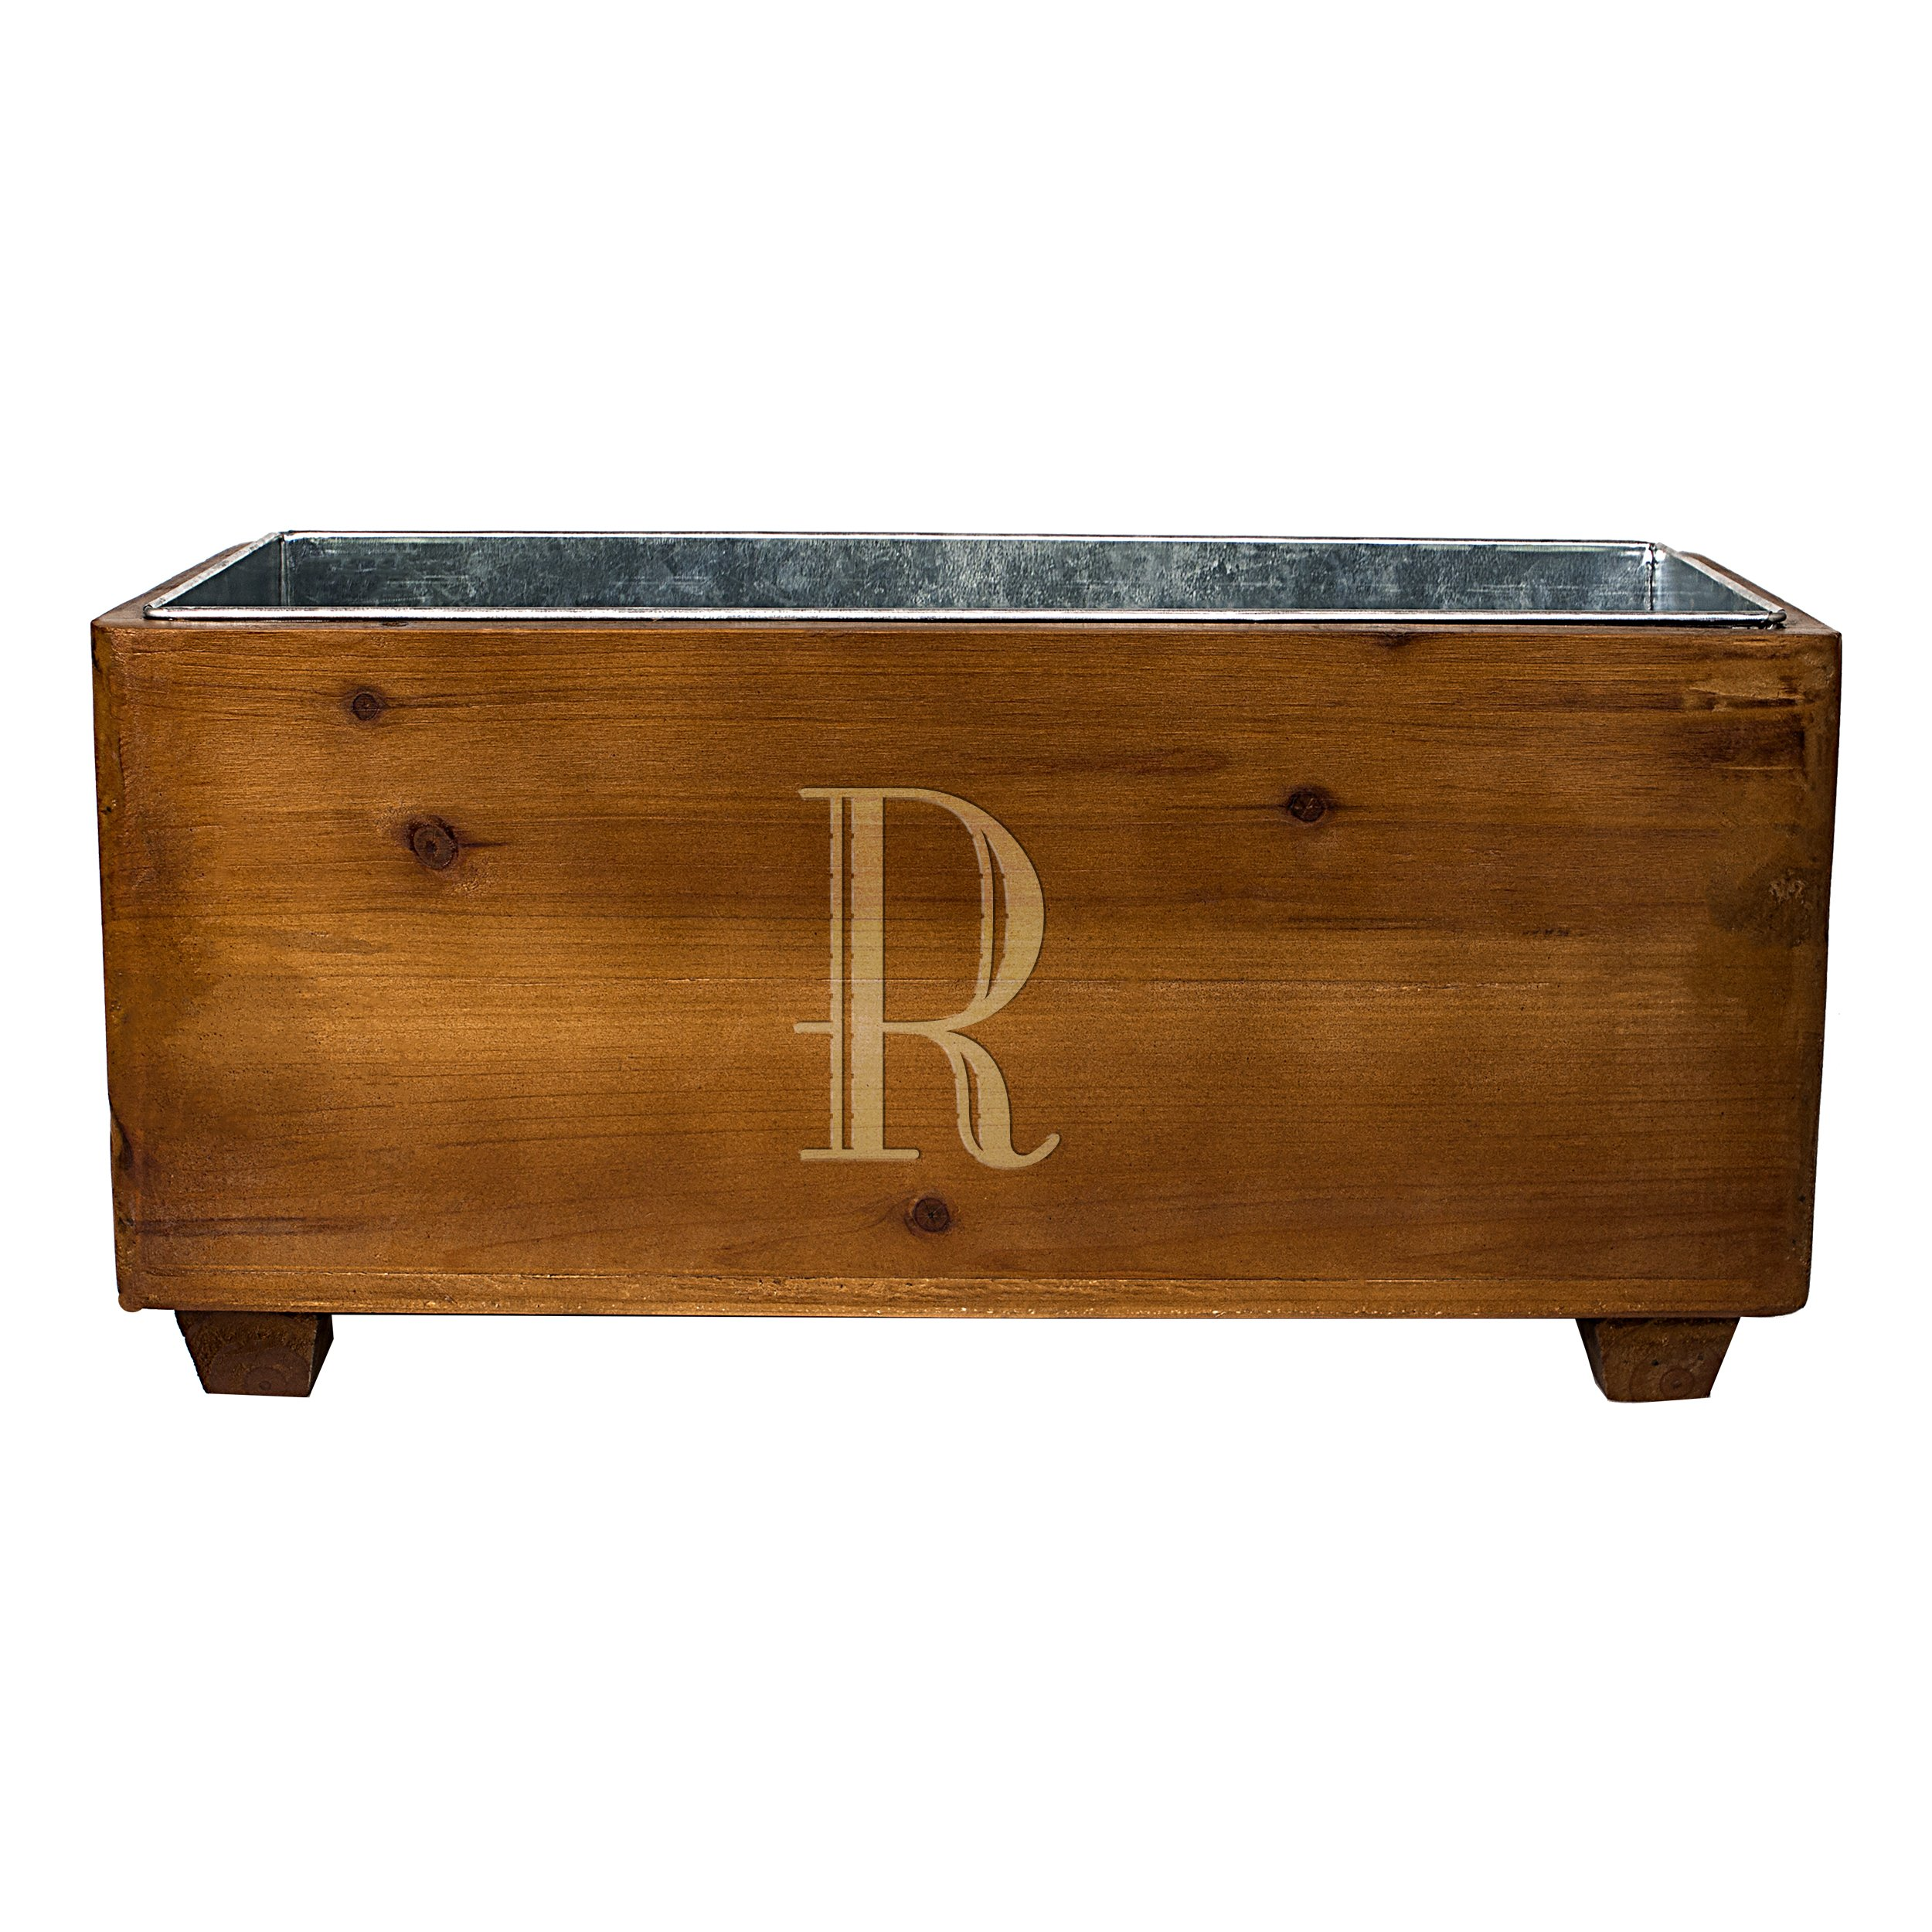 Cathy's Concepts Personalized Wooden Wine Trough, Letter R